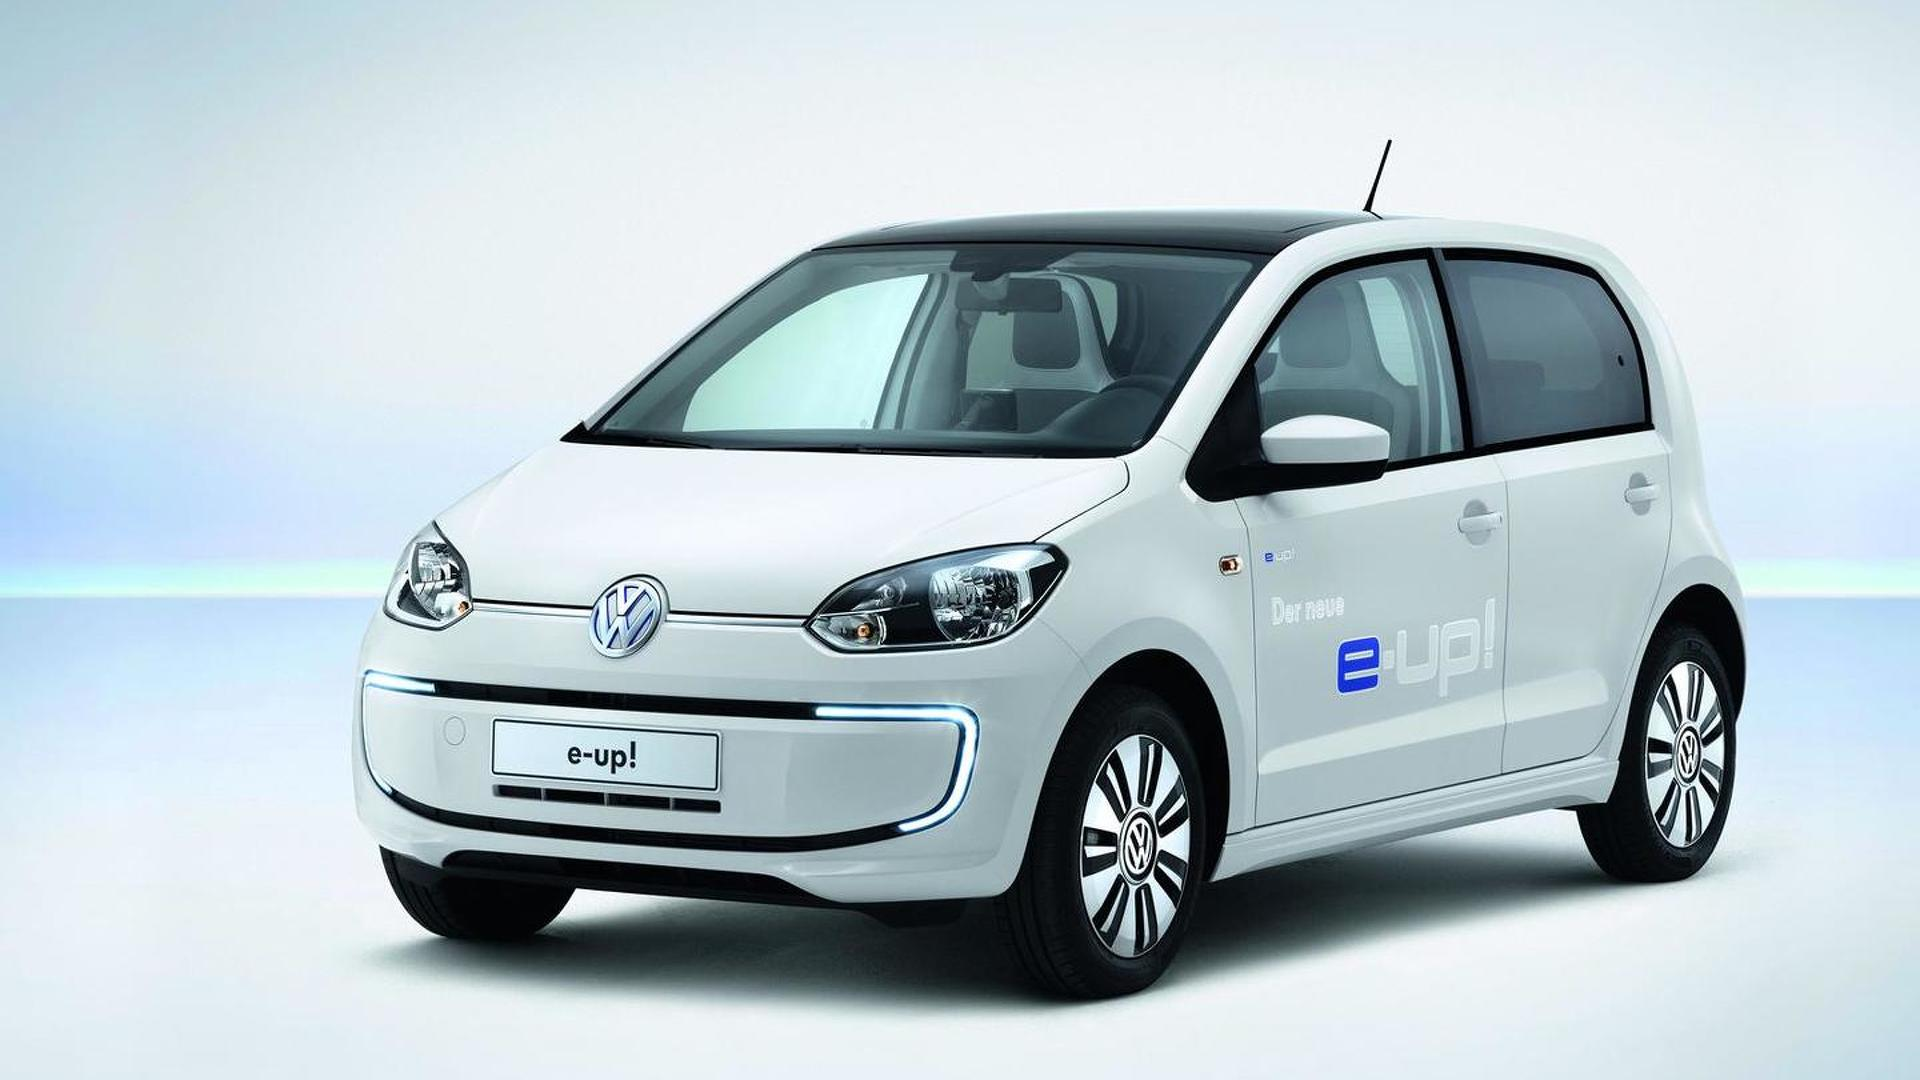 Volkswagen e-up! to cost 2.5 times more than the standard model